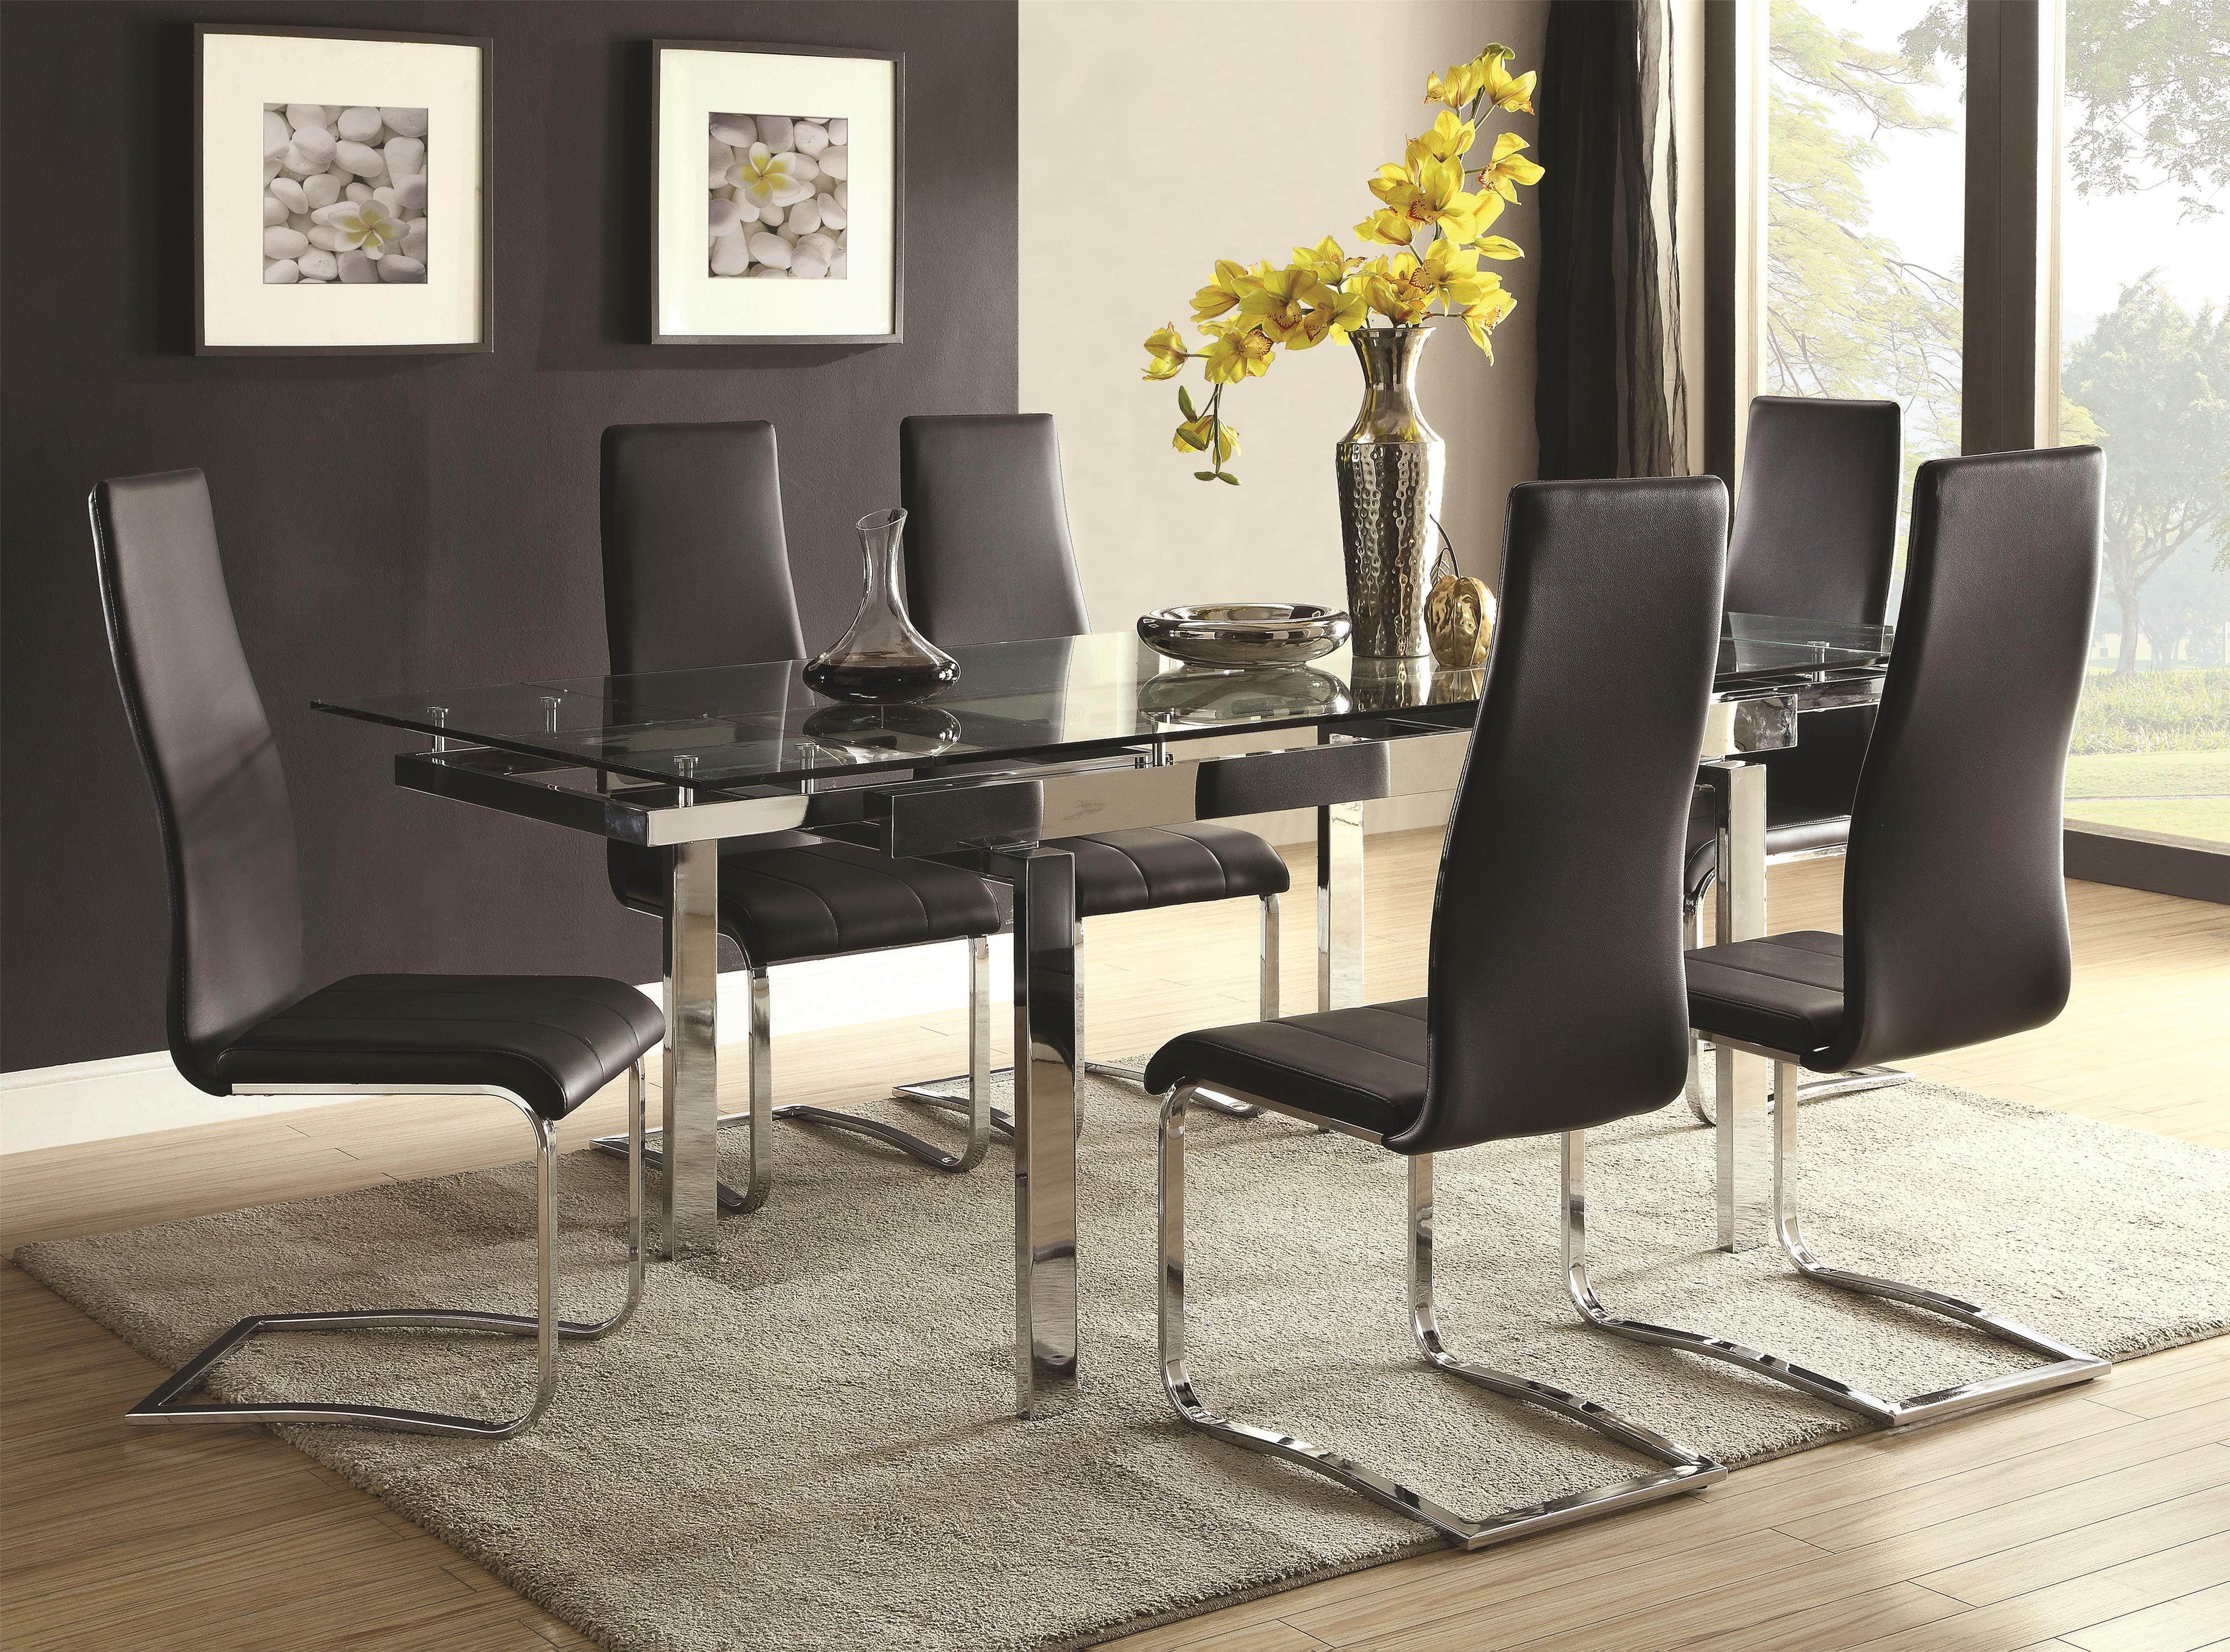 Coaster Modern Dining Contemporary Dining Room Set - Item Number: 106281+6x100515BLK